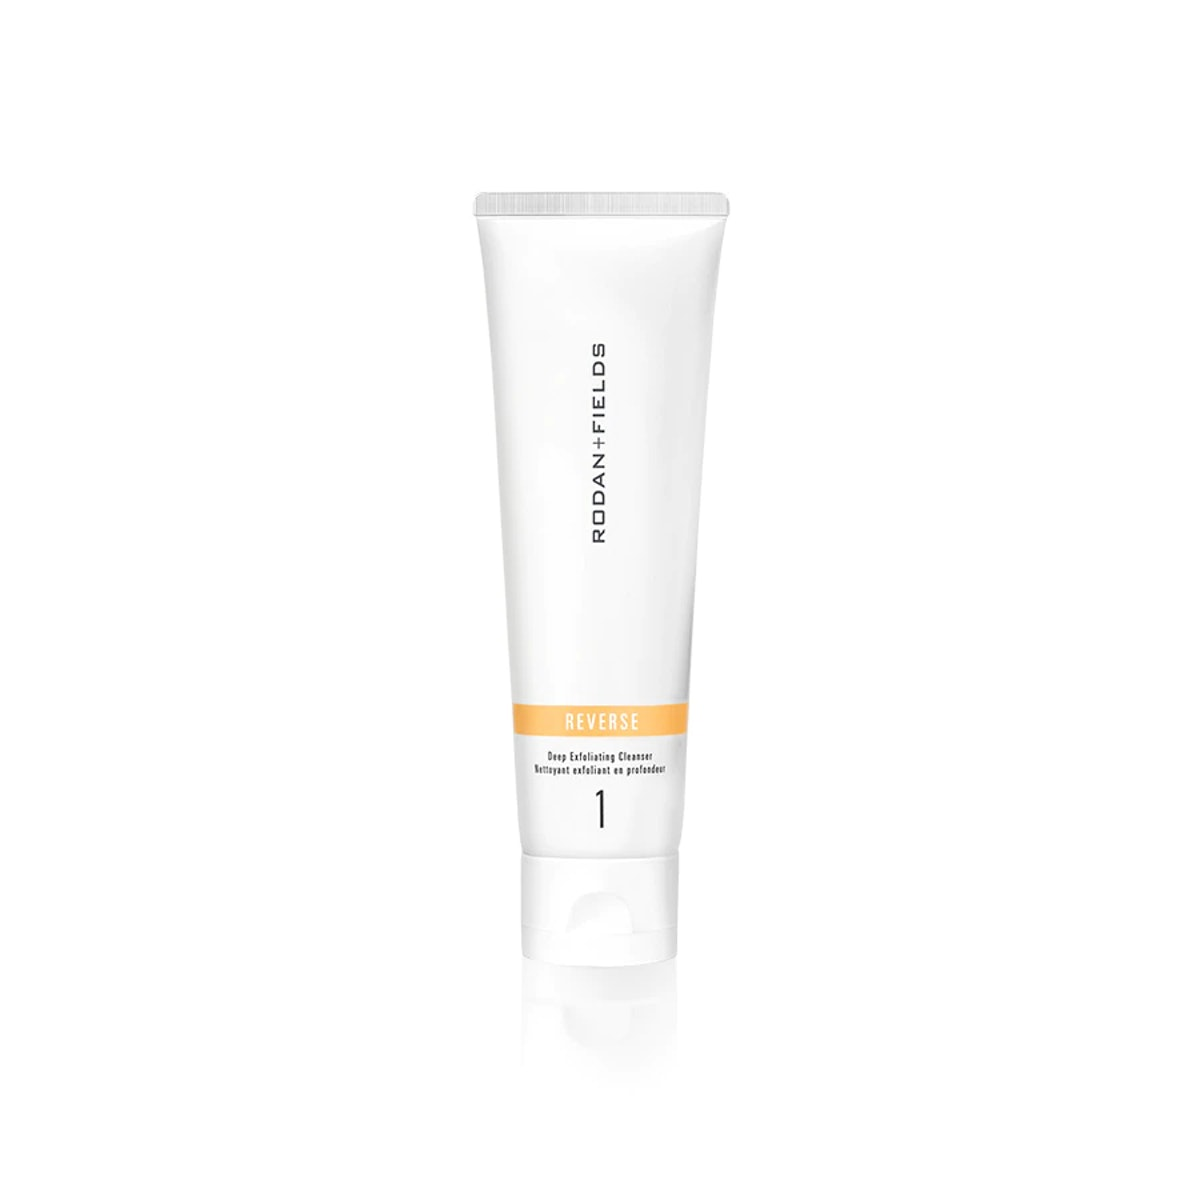 Reserve Deep Exfoliating Cleanser